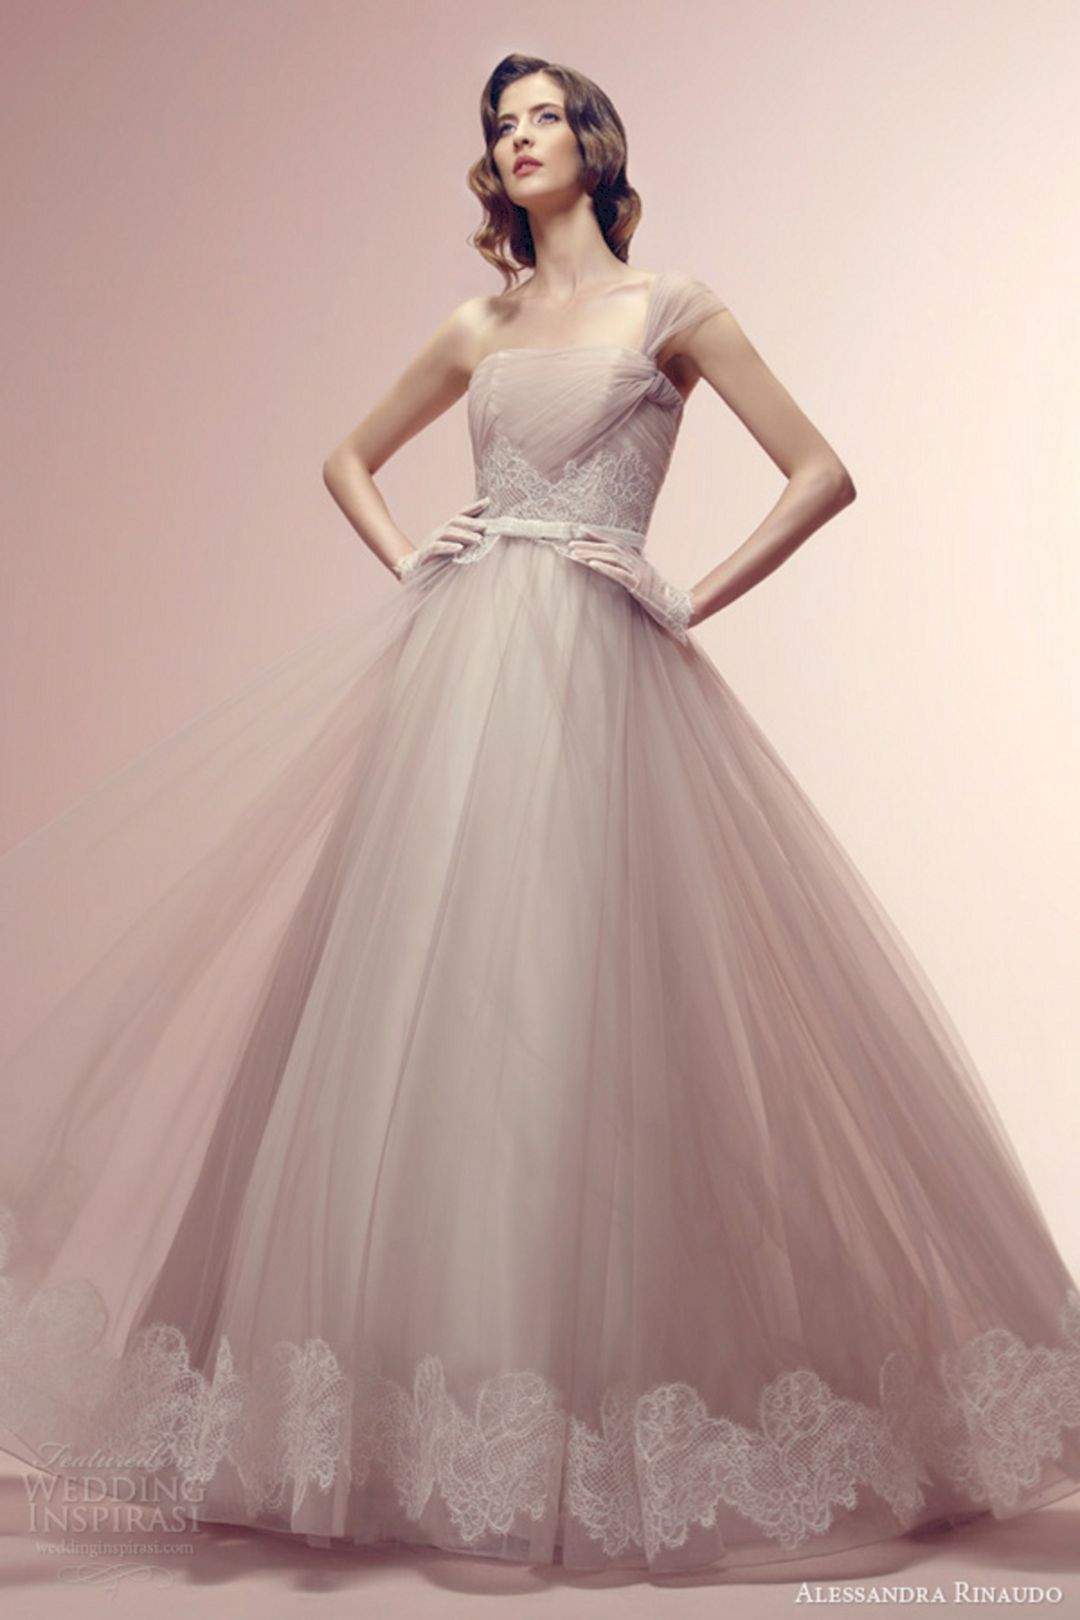 Hayley paige dori wedding dress  Lovely Pink Wedding Gown Color Ideas For Beautiful Bride  Best